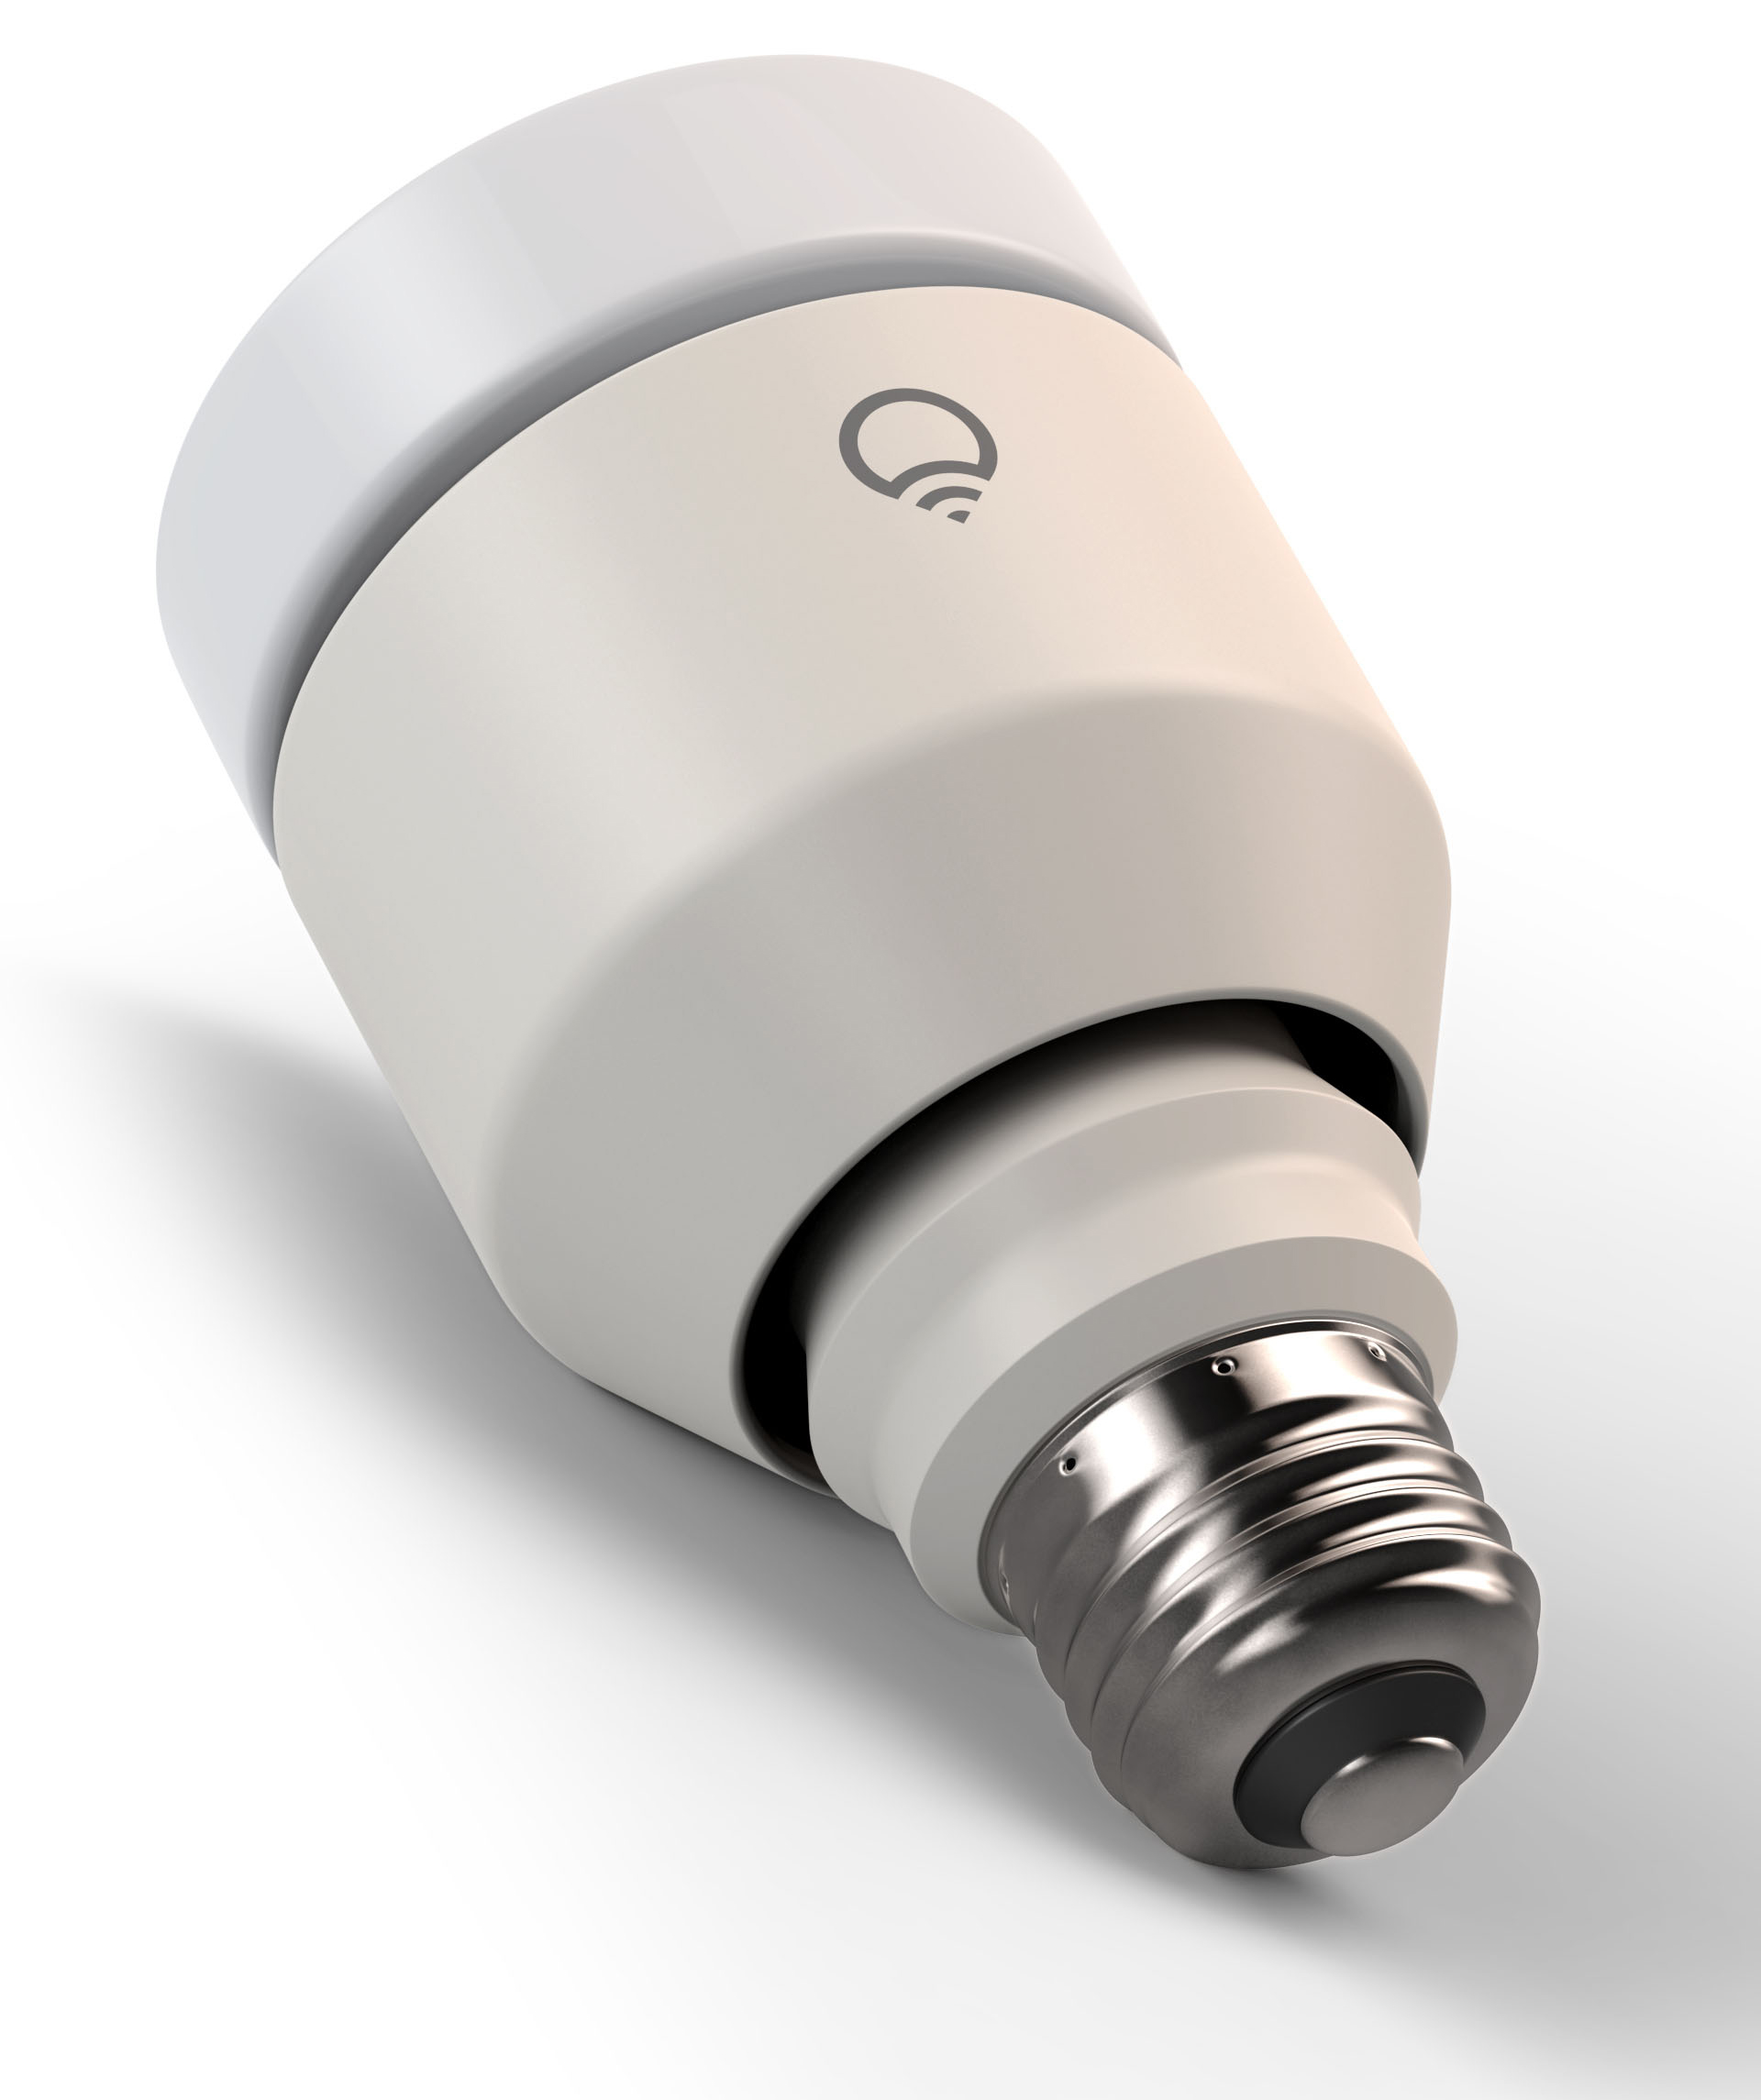 LIFX A19 smart bulb product package rendering on white background